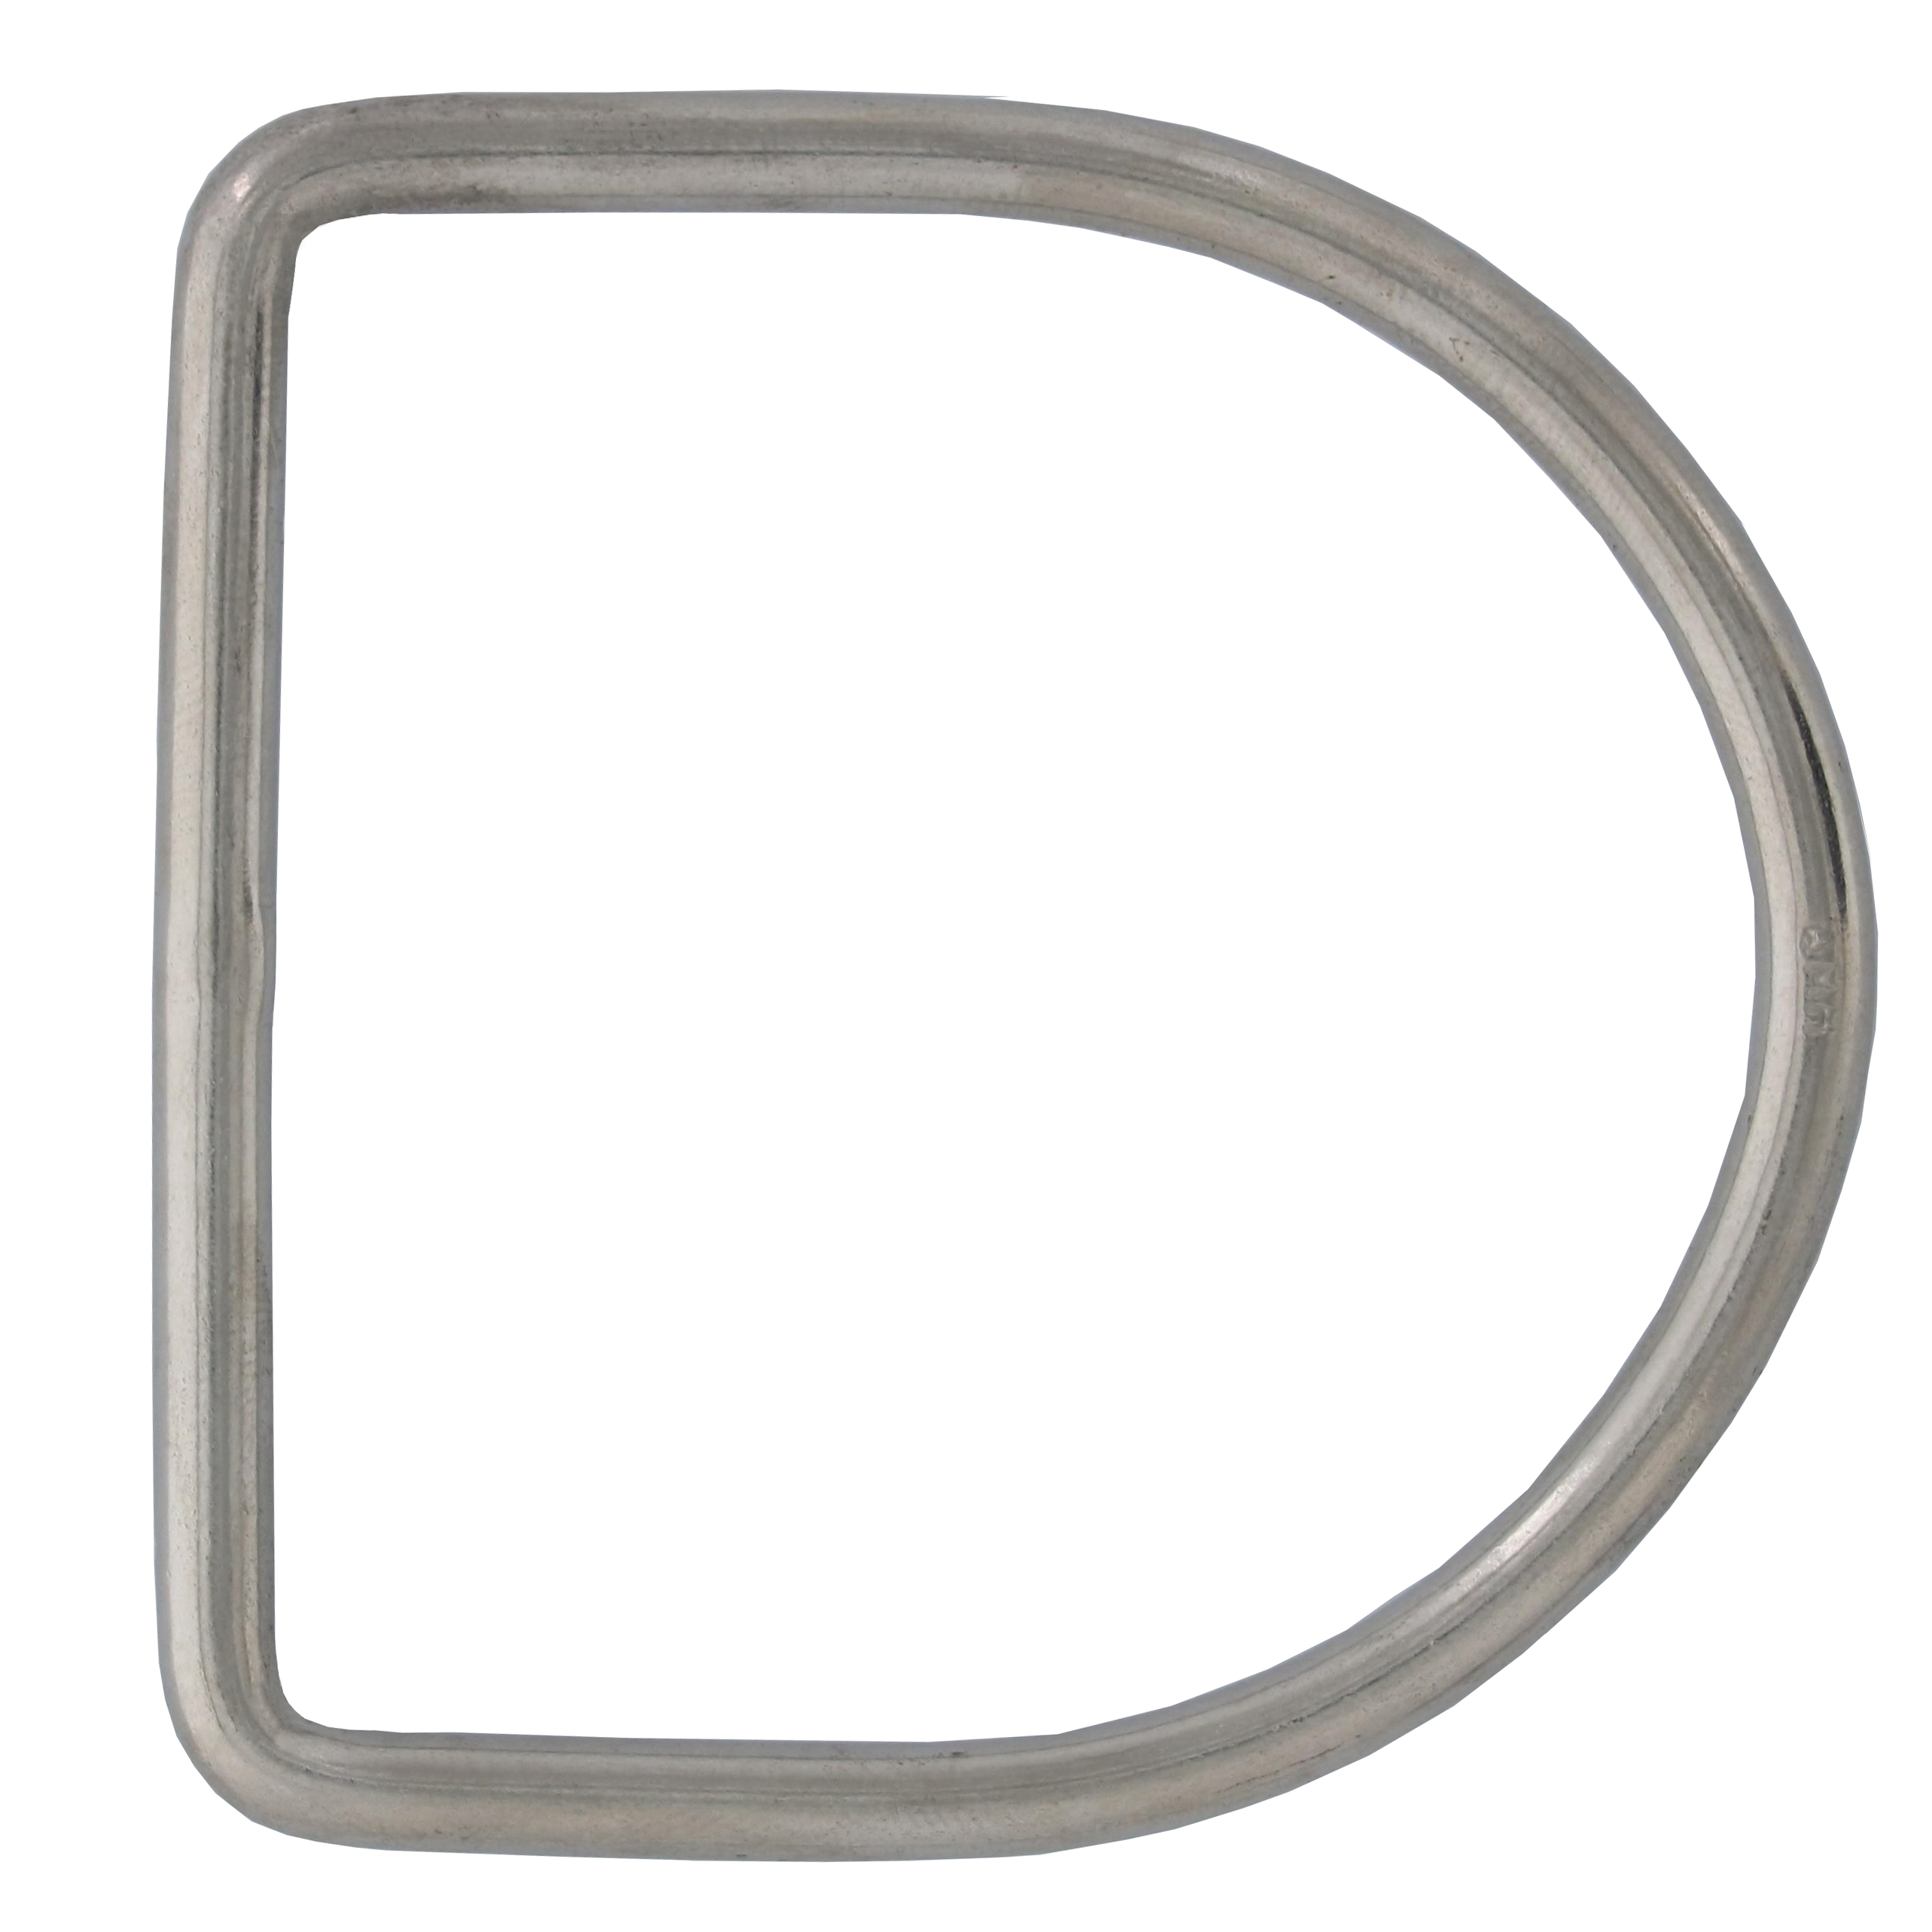 "3/16"" x 2-3/8"" Stainless Steel D Ring Image 1"